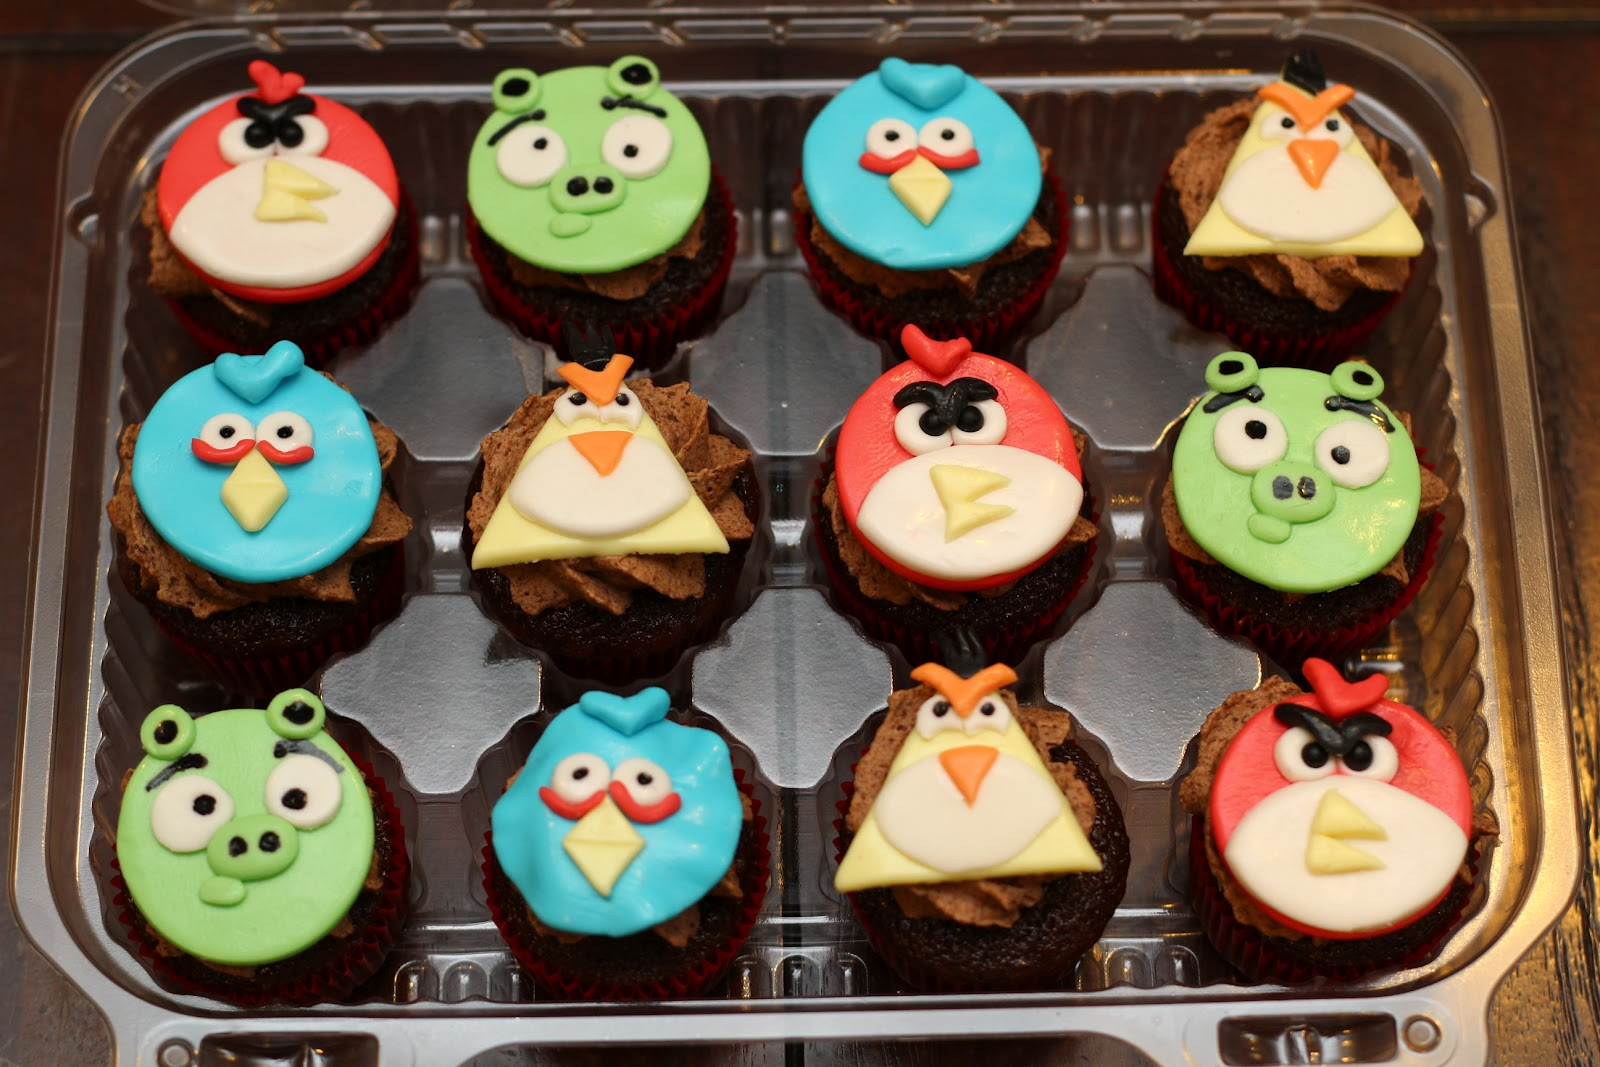 Sweet Cakes Honey Buns Angry Birds Cake and Cupcakes 1